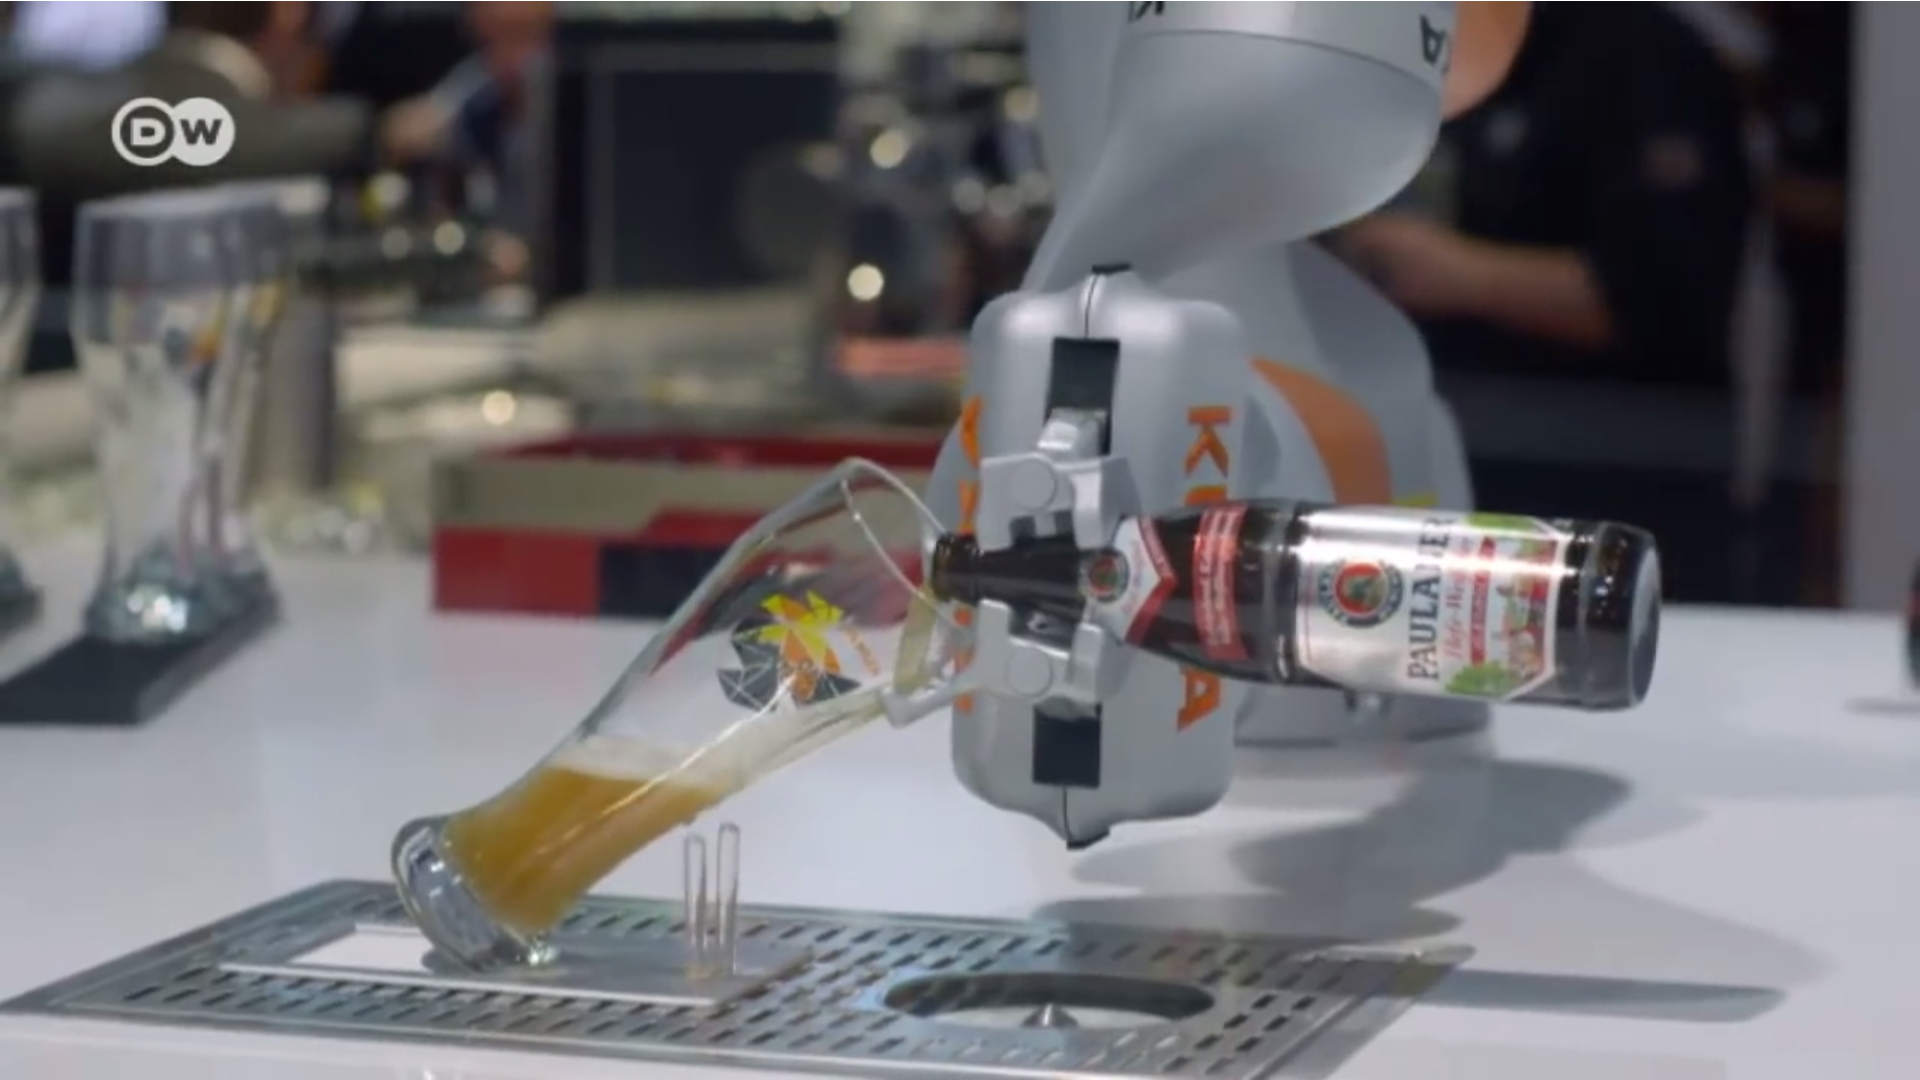 Watch Full Movie - Will robots steal our jobs? - The future of work